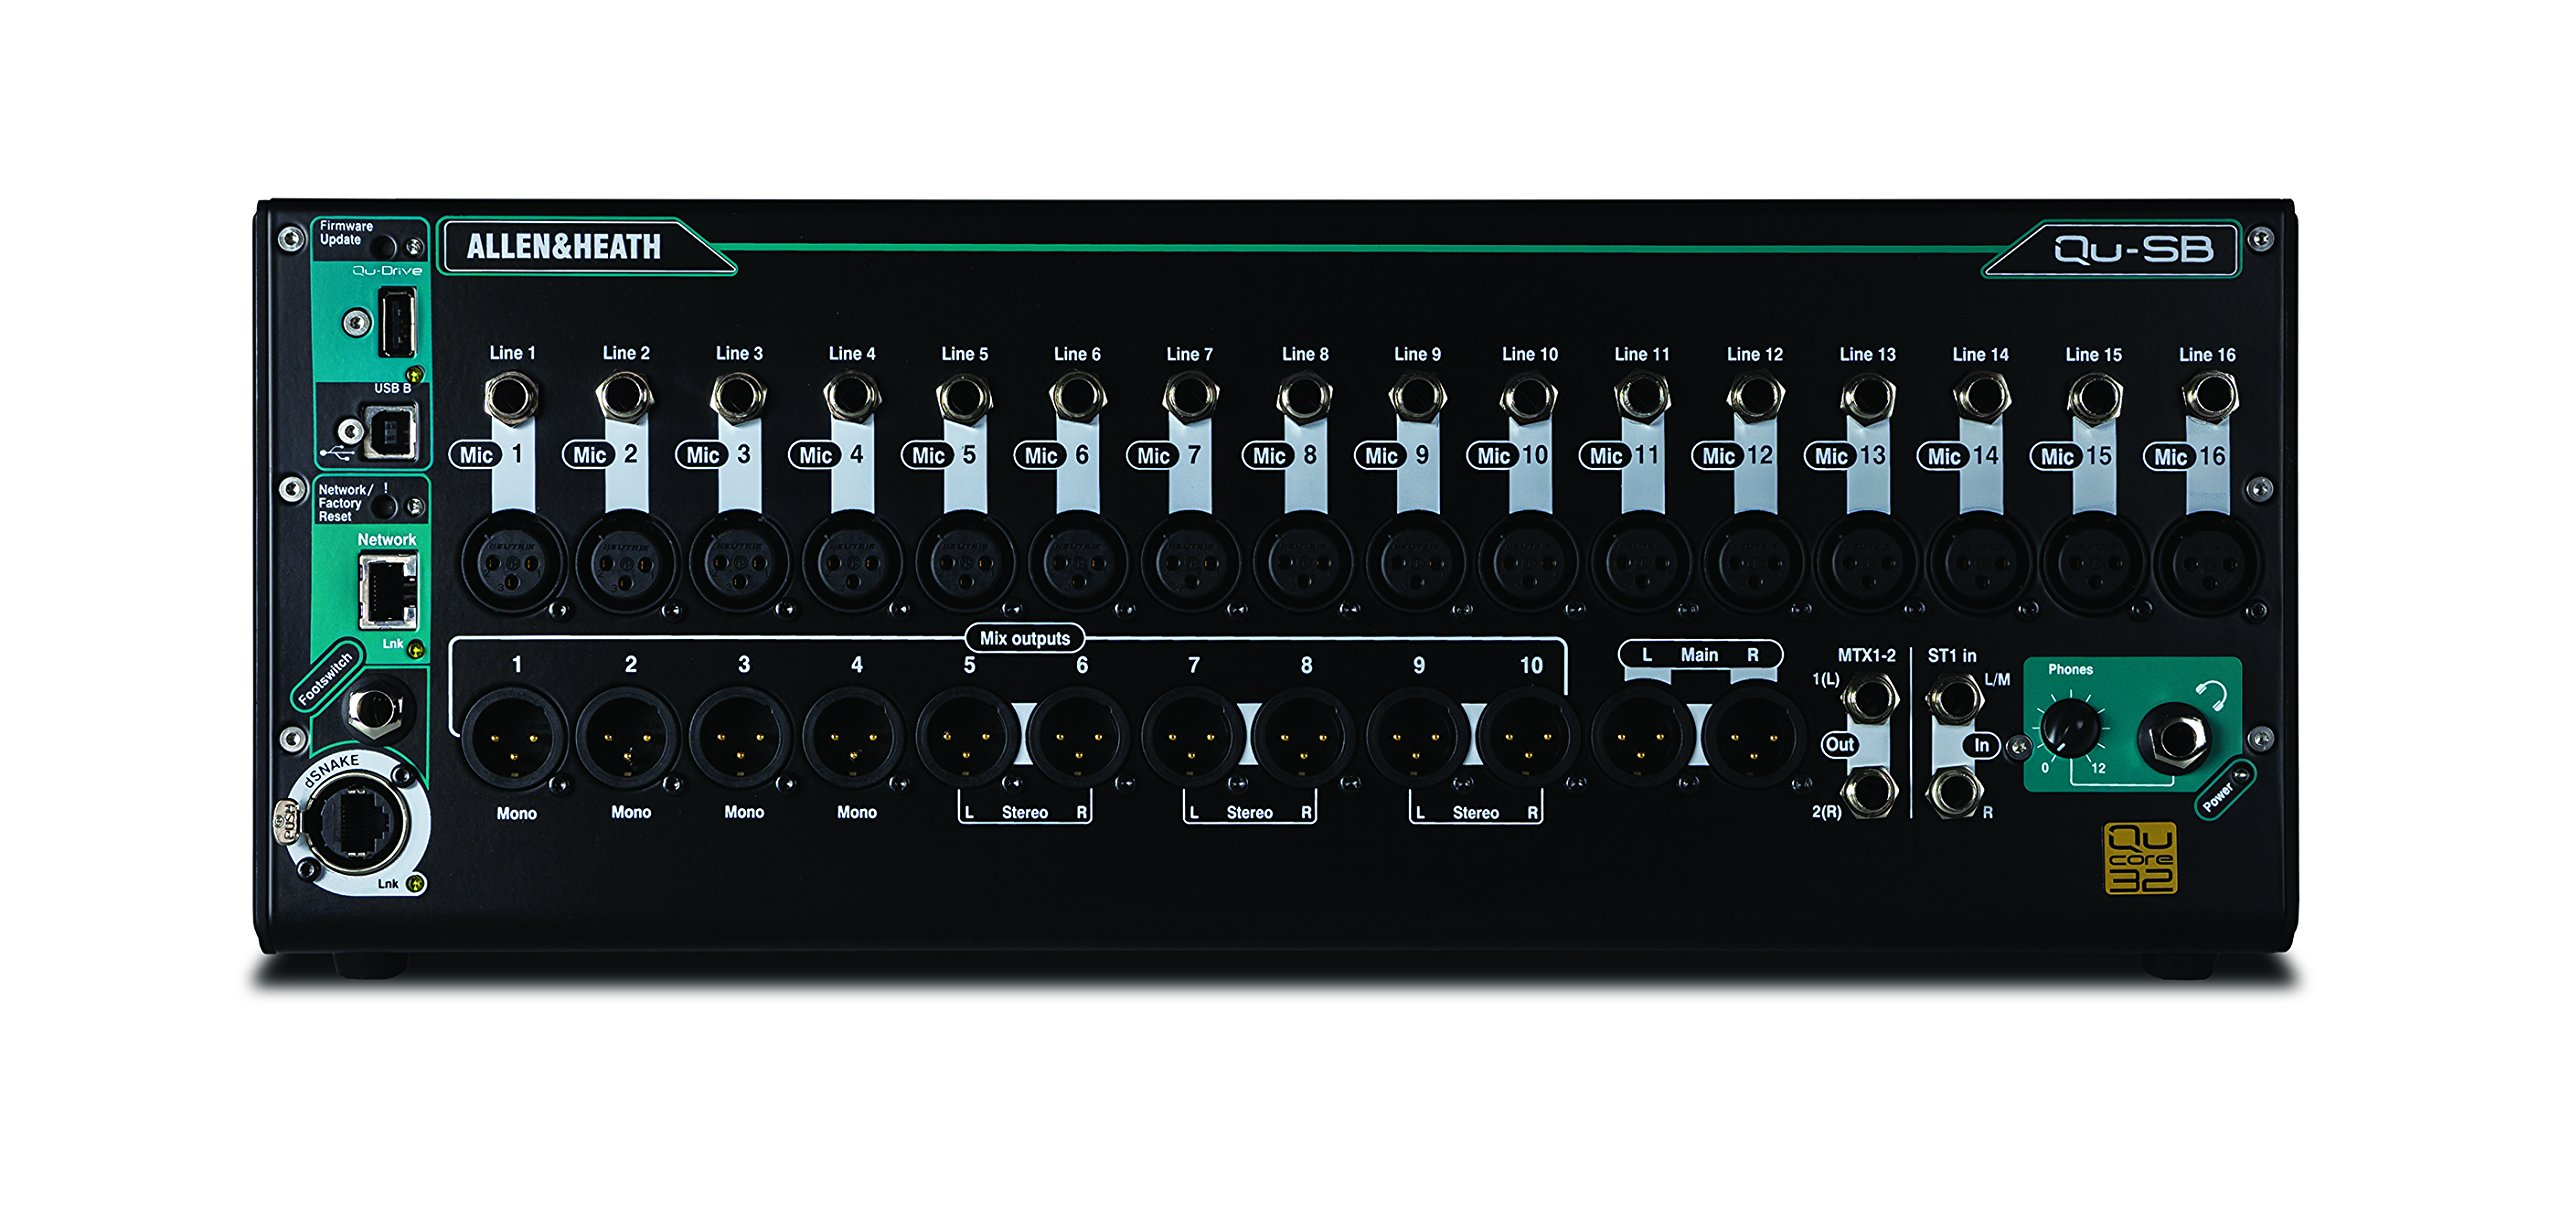 Allen & heath qu-sb Portable 18-in/14-out mixer digitale con telecomando wireless controllo